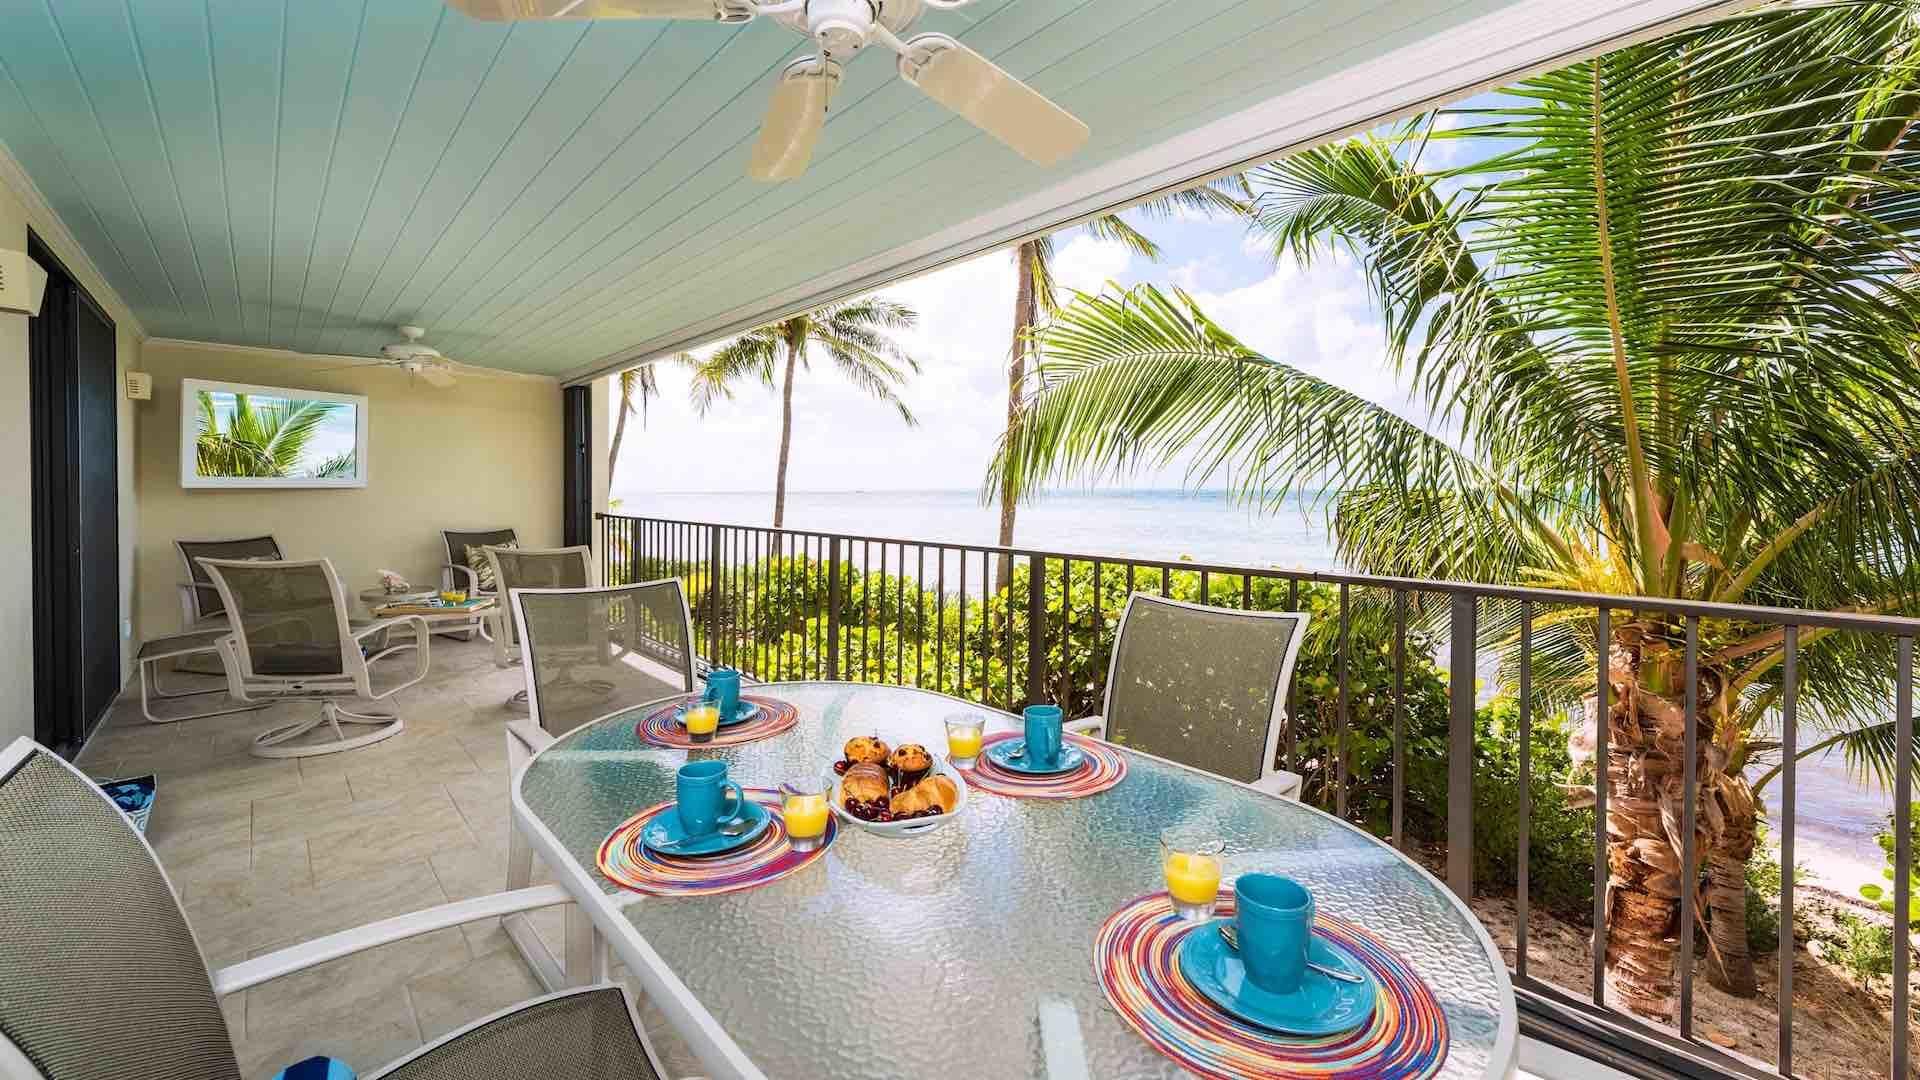 Oceanfront condo rental in Key West with 2 bedrooms and heated community pool